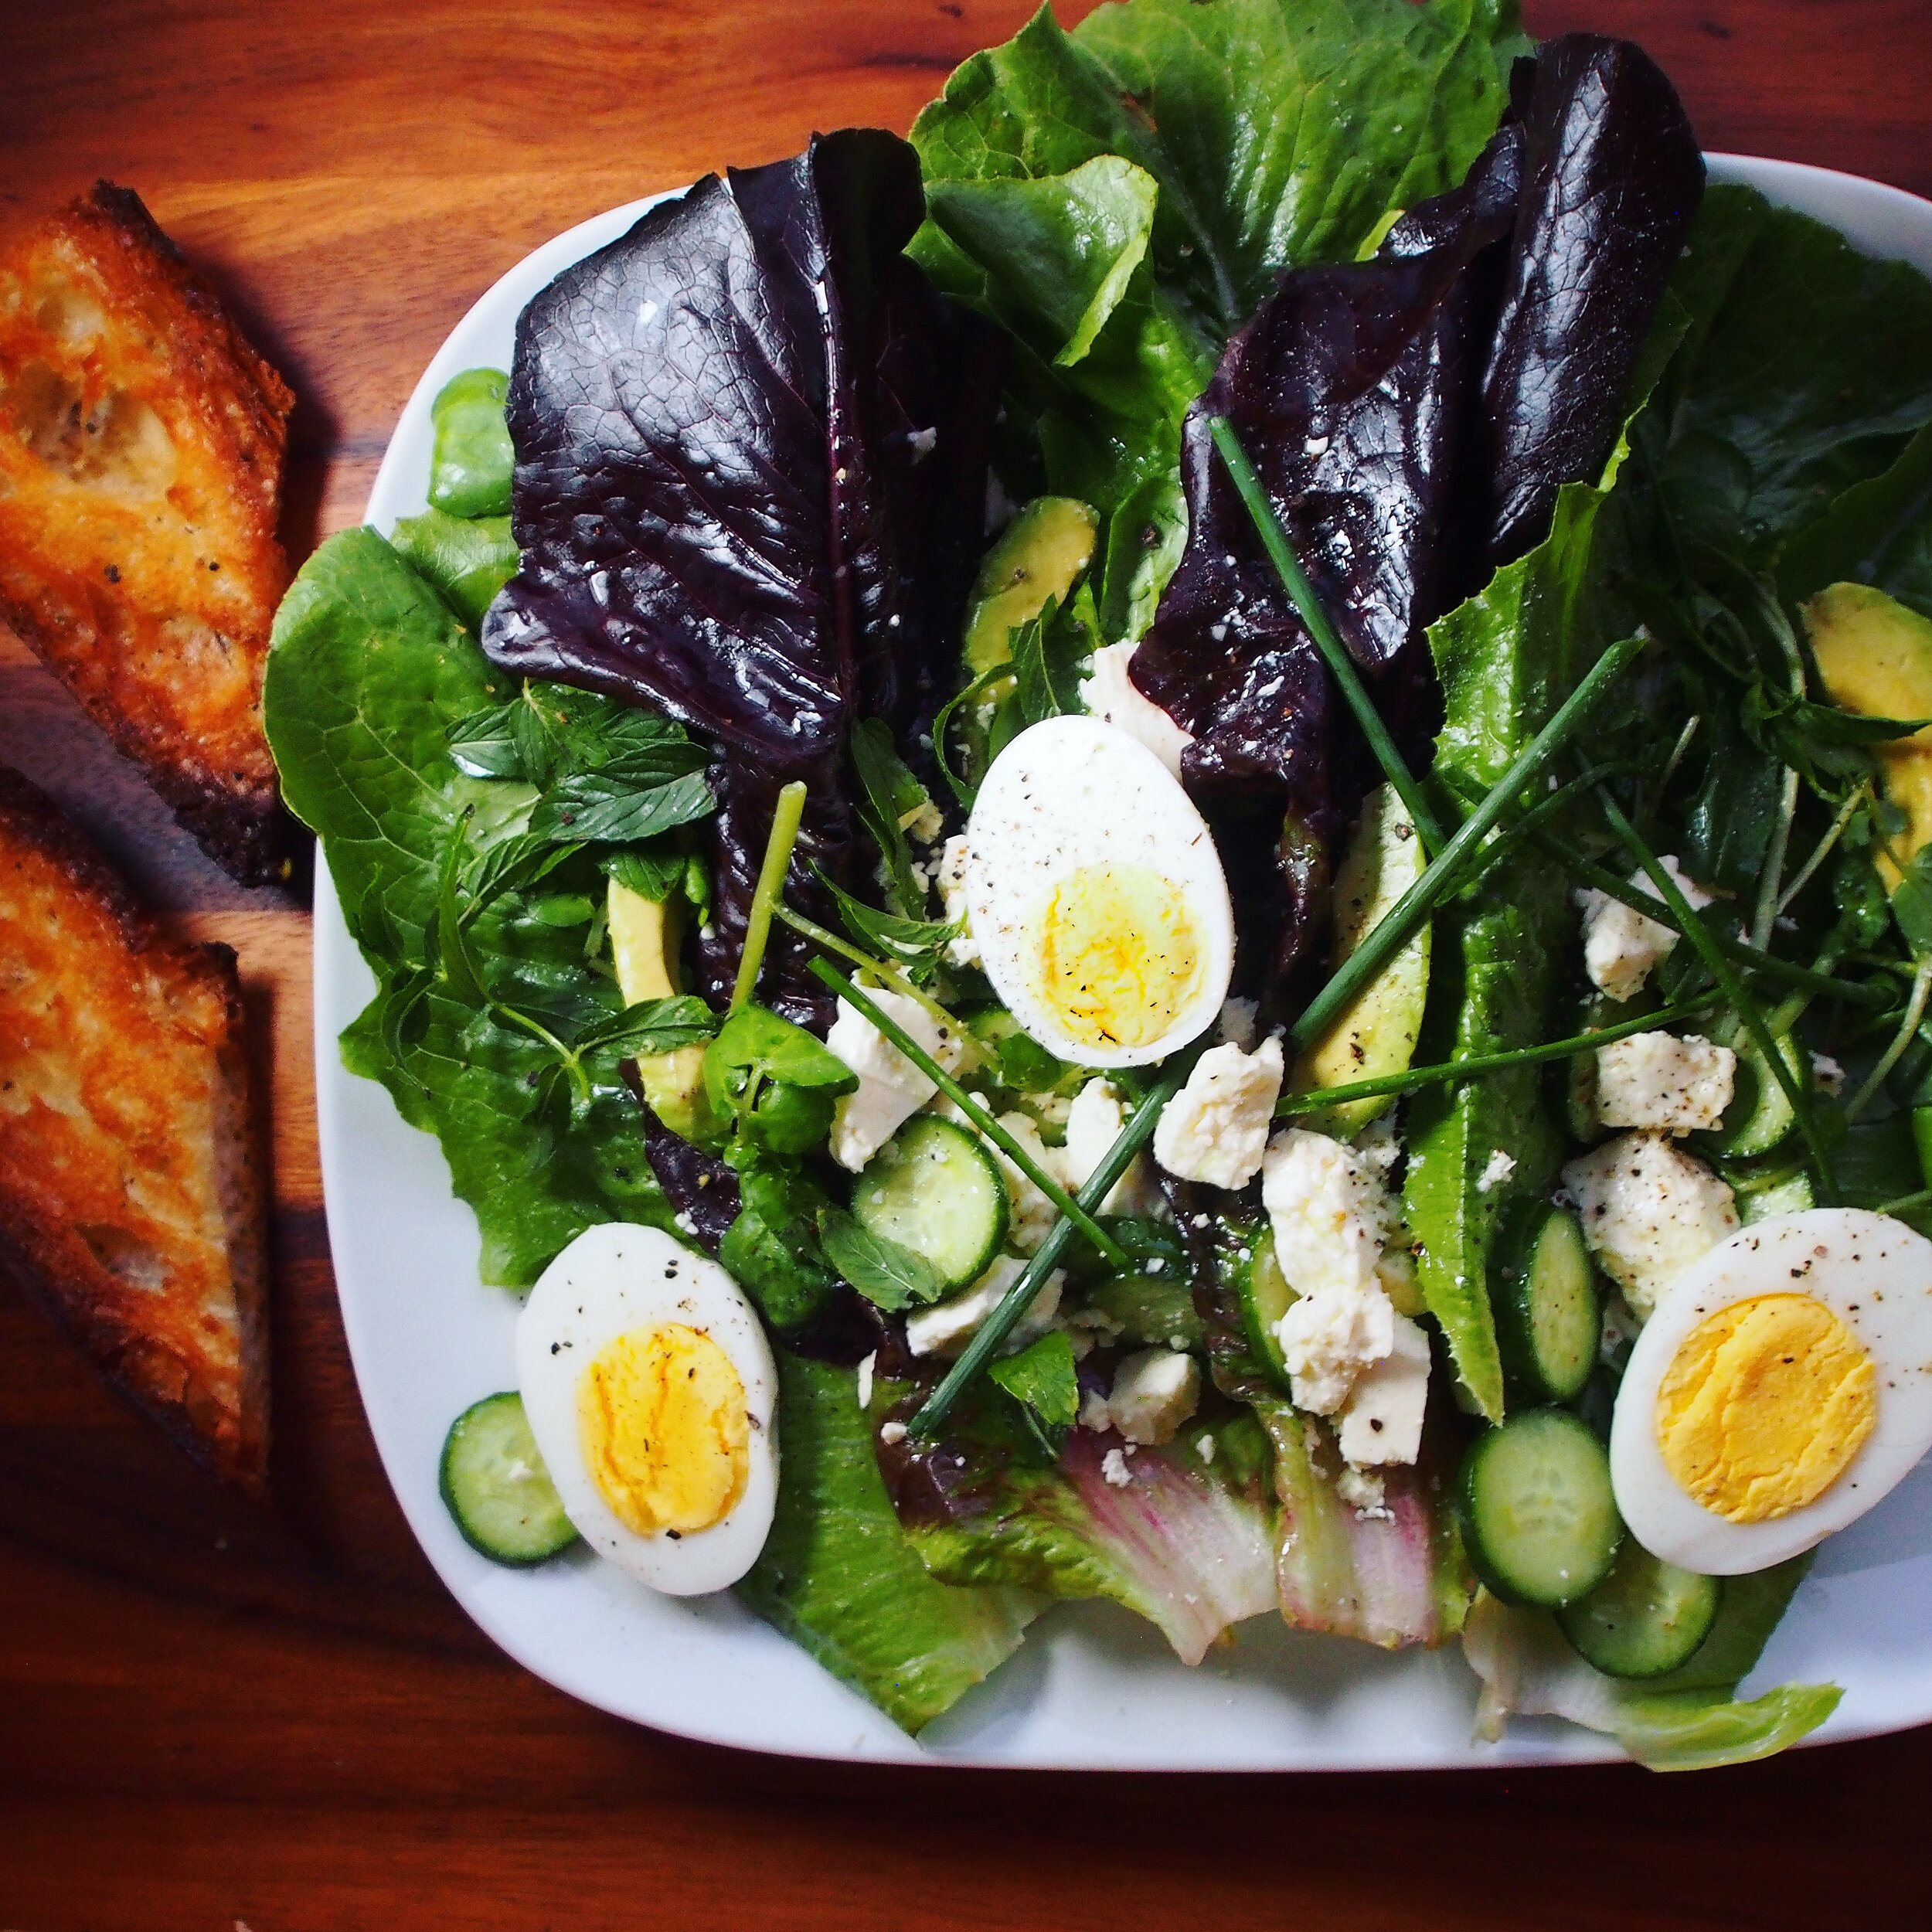 This breakfast salad has eggs, feta, cucumbers, chives, and avocado. It's served with a crunchy toasted baguette. Breakfast salads are the new avocado toast - salad can be eaten any time of the day!